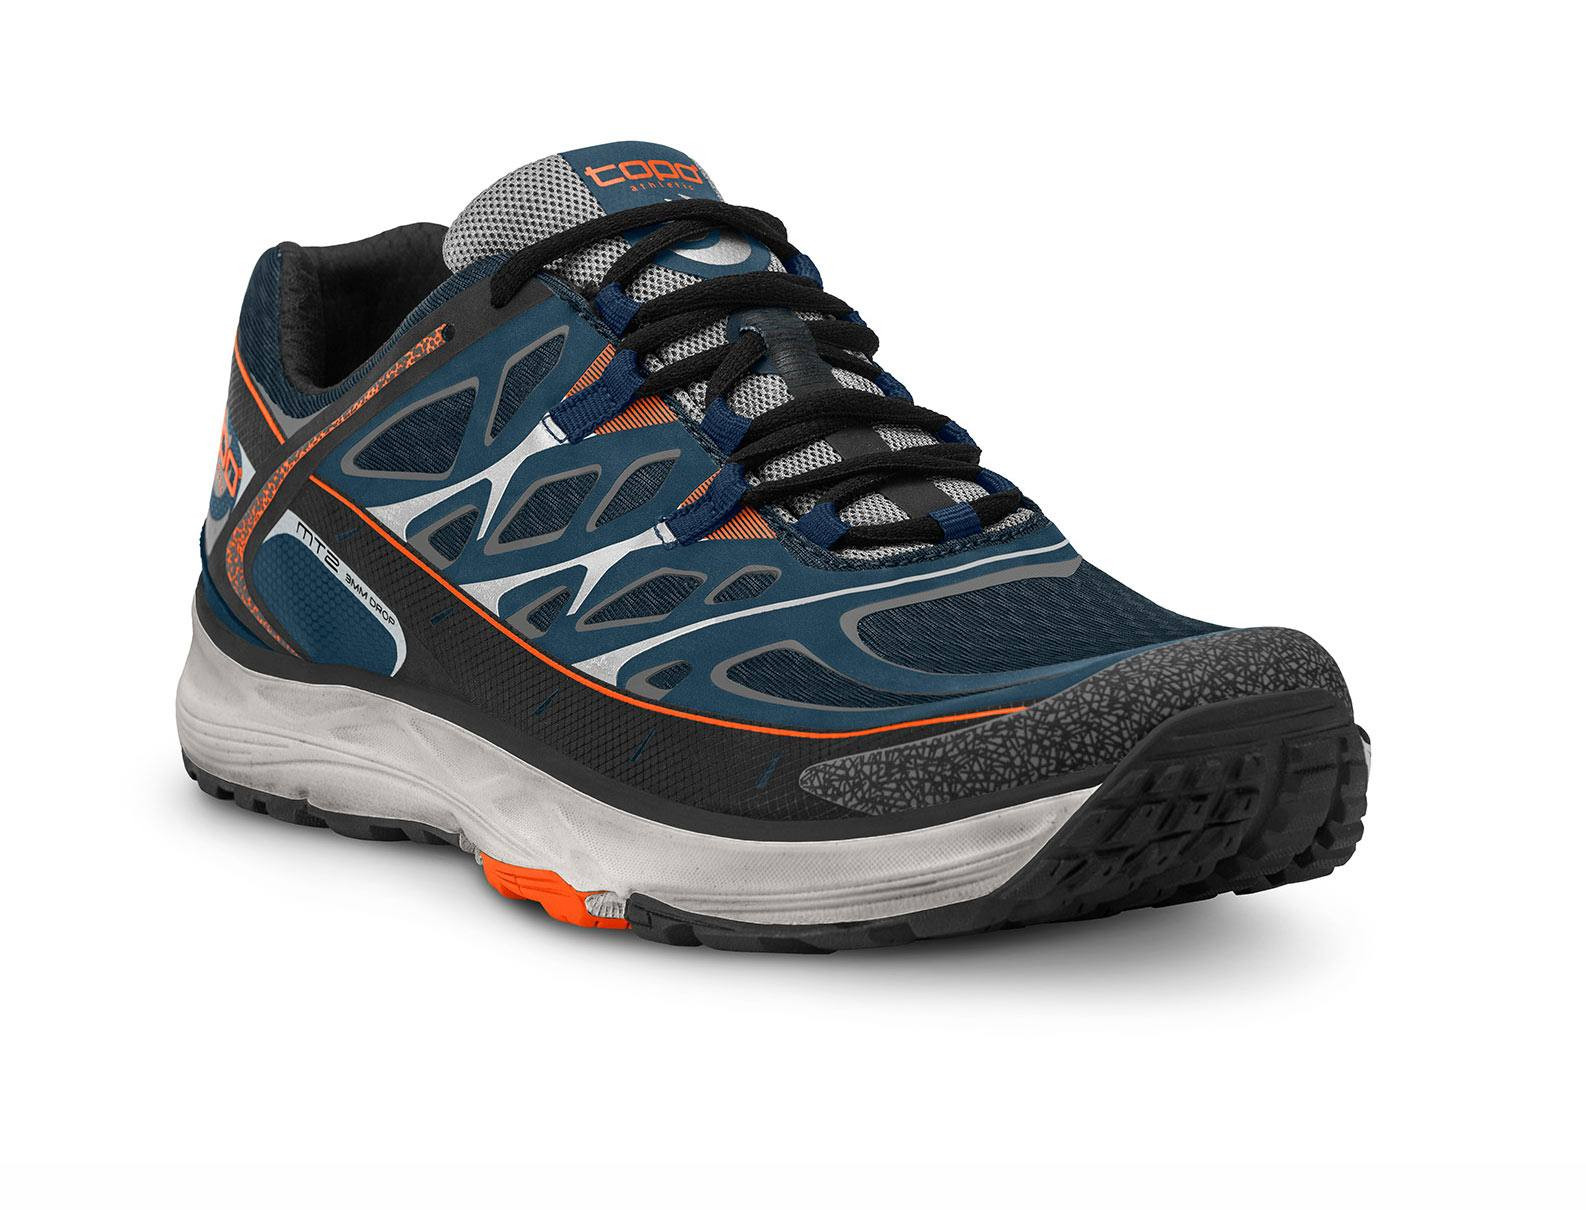 Athletic Shoes With Roomy Toe Box